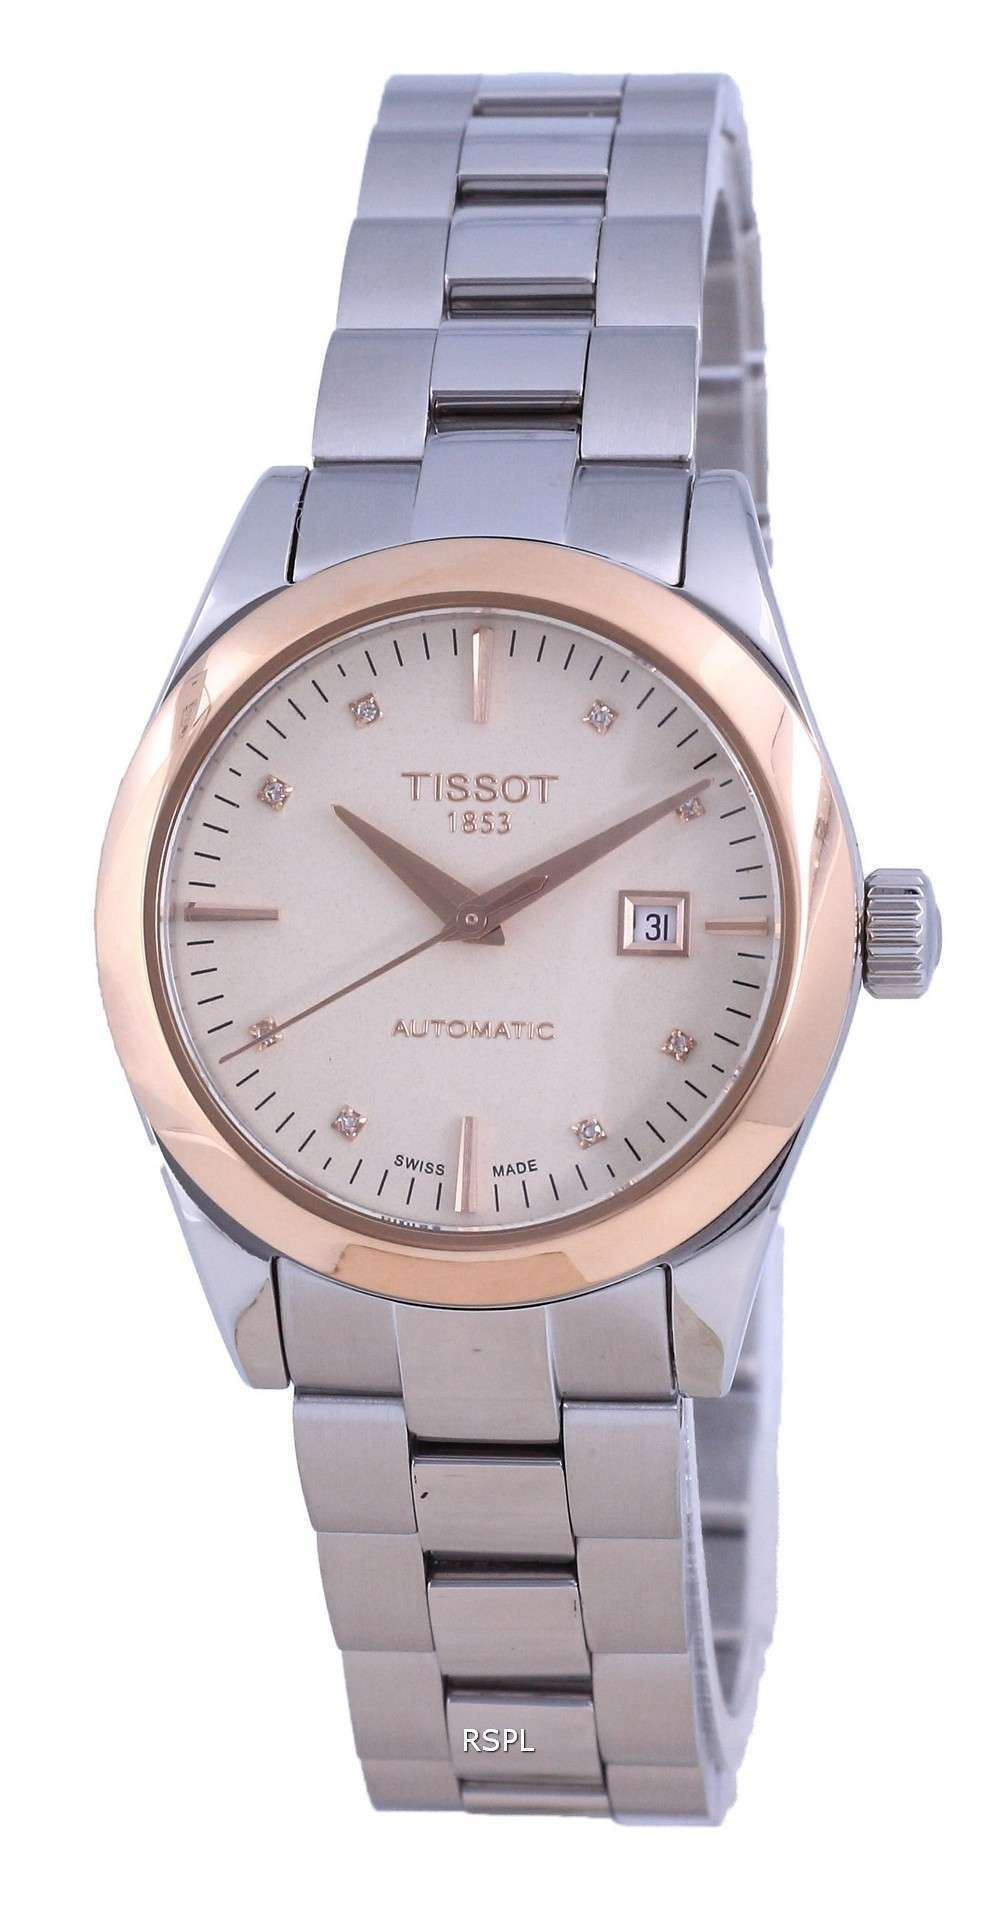 Tissot T-Gold T-My Lady Diamond Accents 18K Gold Automatic T930.007.41.266.00 T9300074126600 Reloj para mujer